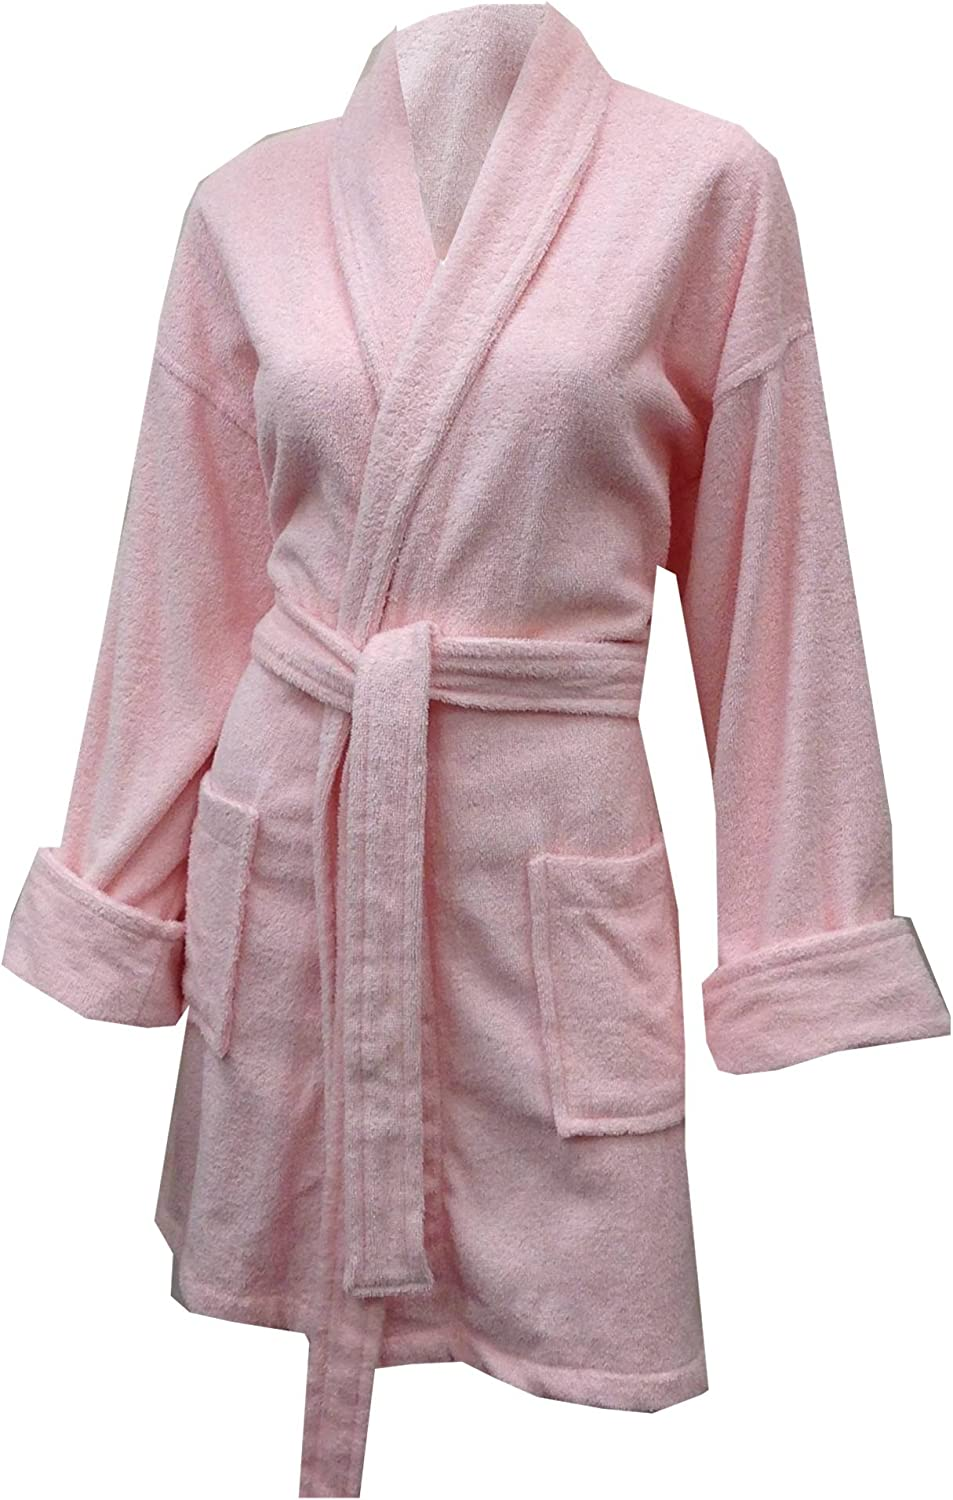 Aegean Apparel Women's Short Solid Terry Loop Robe in Light Pink, One Size